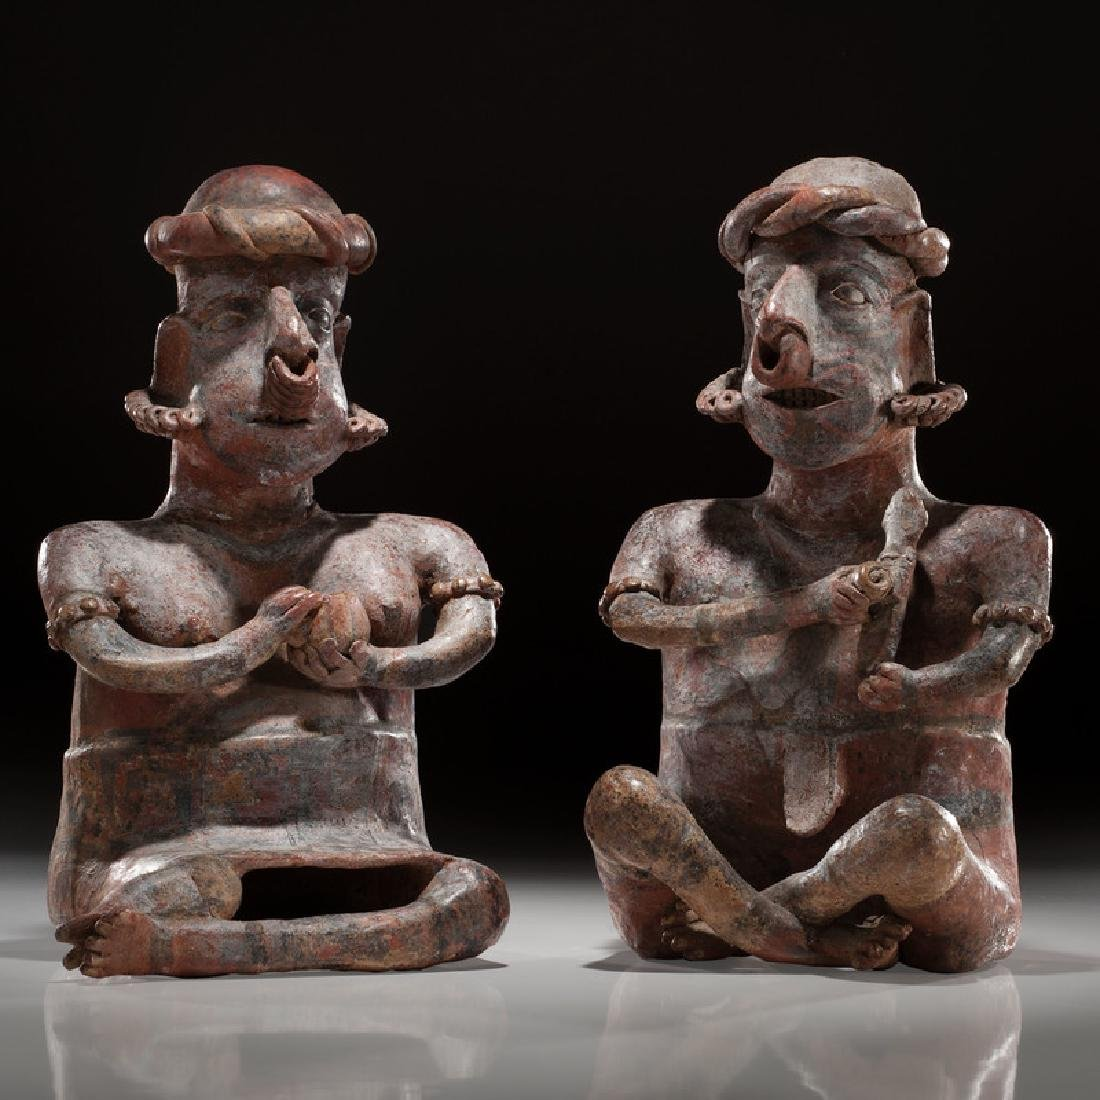 Protoclassic Jalisco Seated Male and Female Pottery